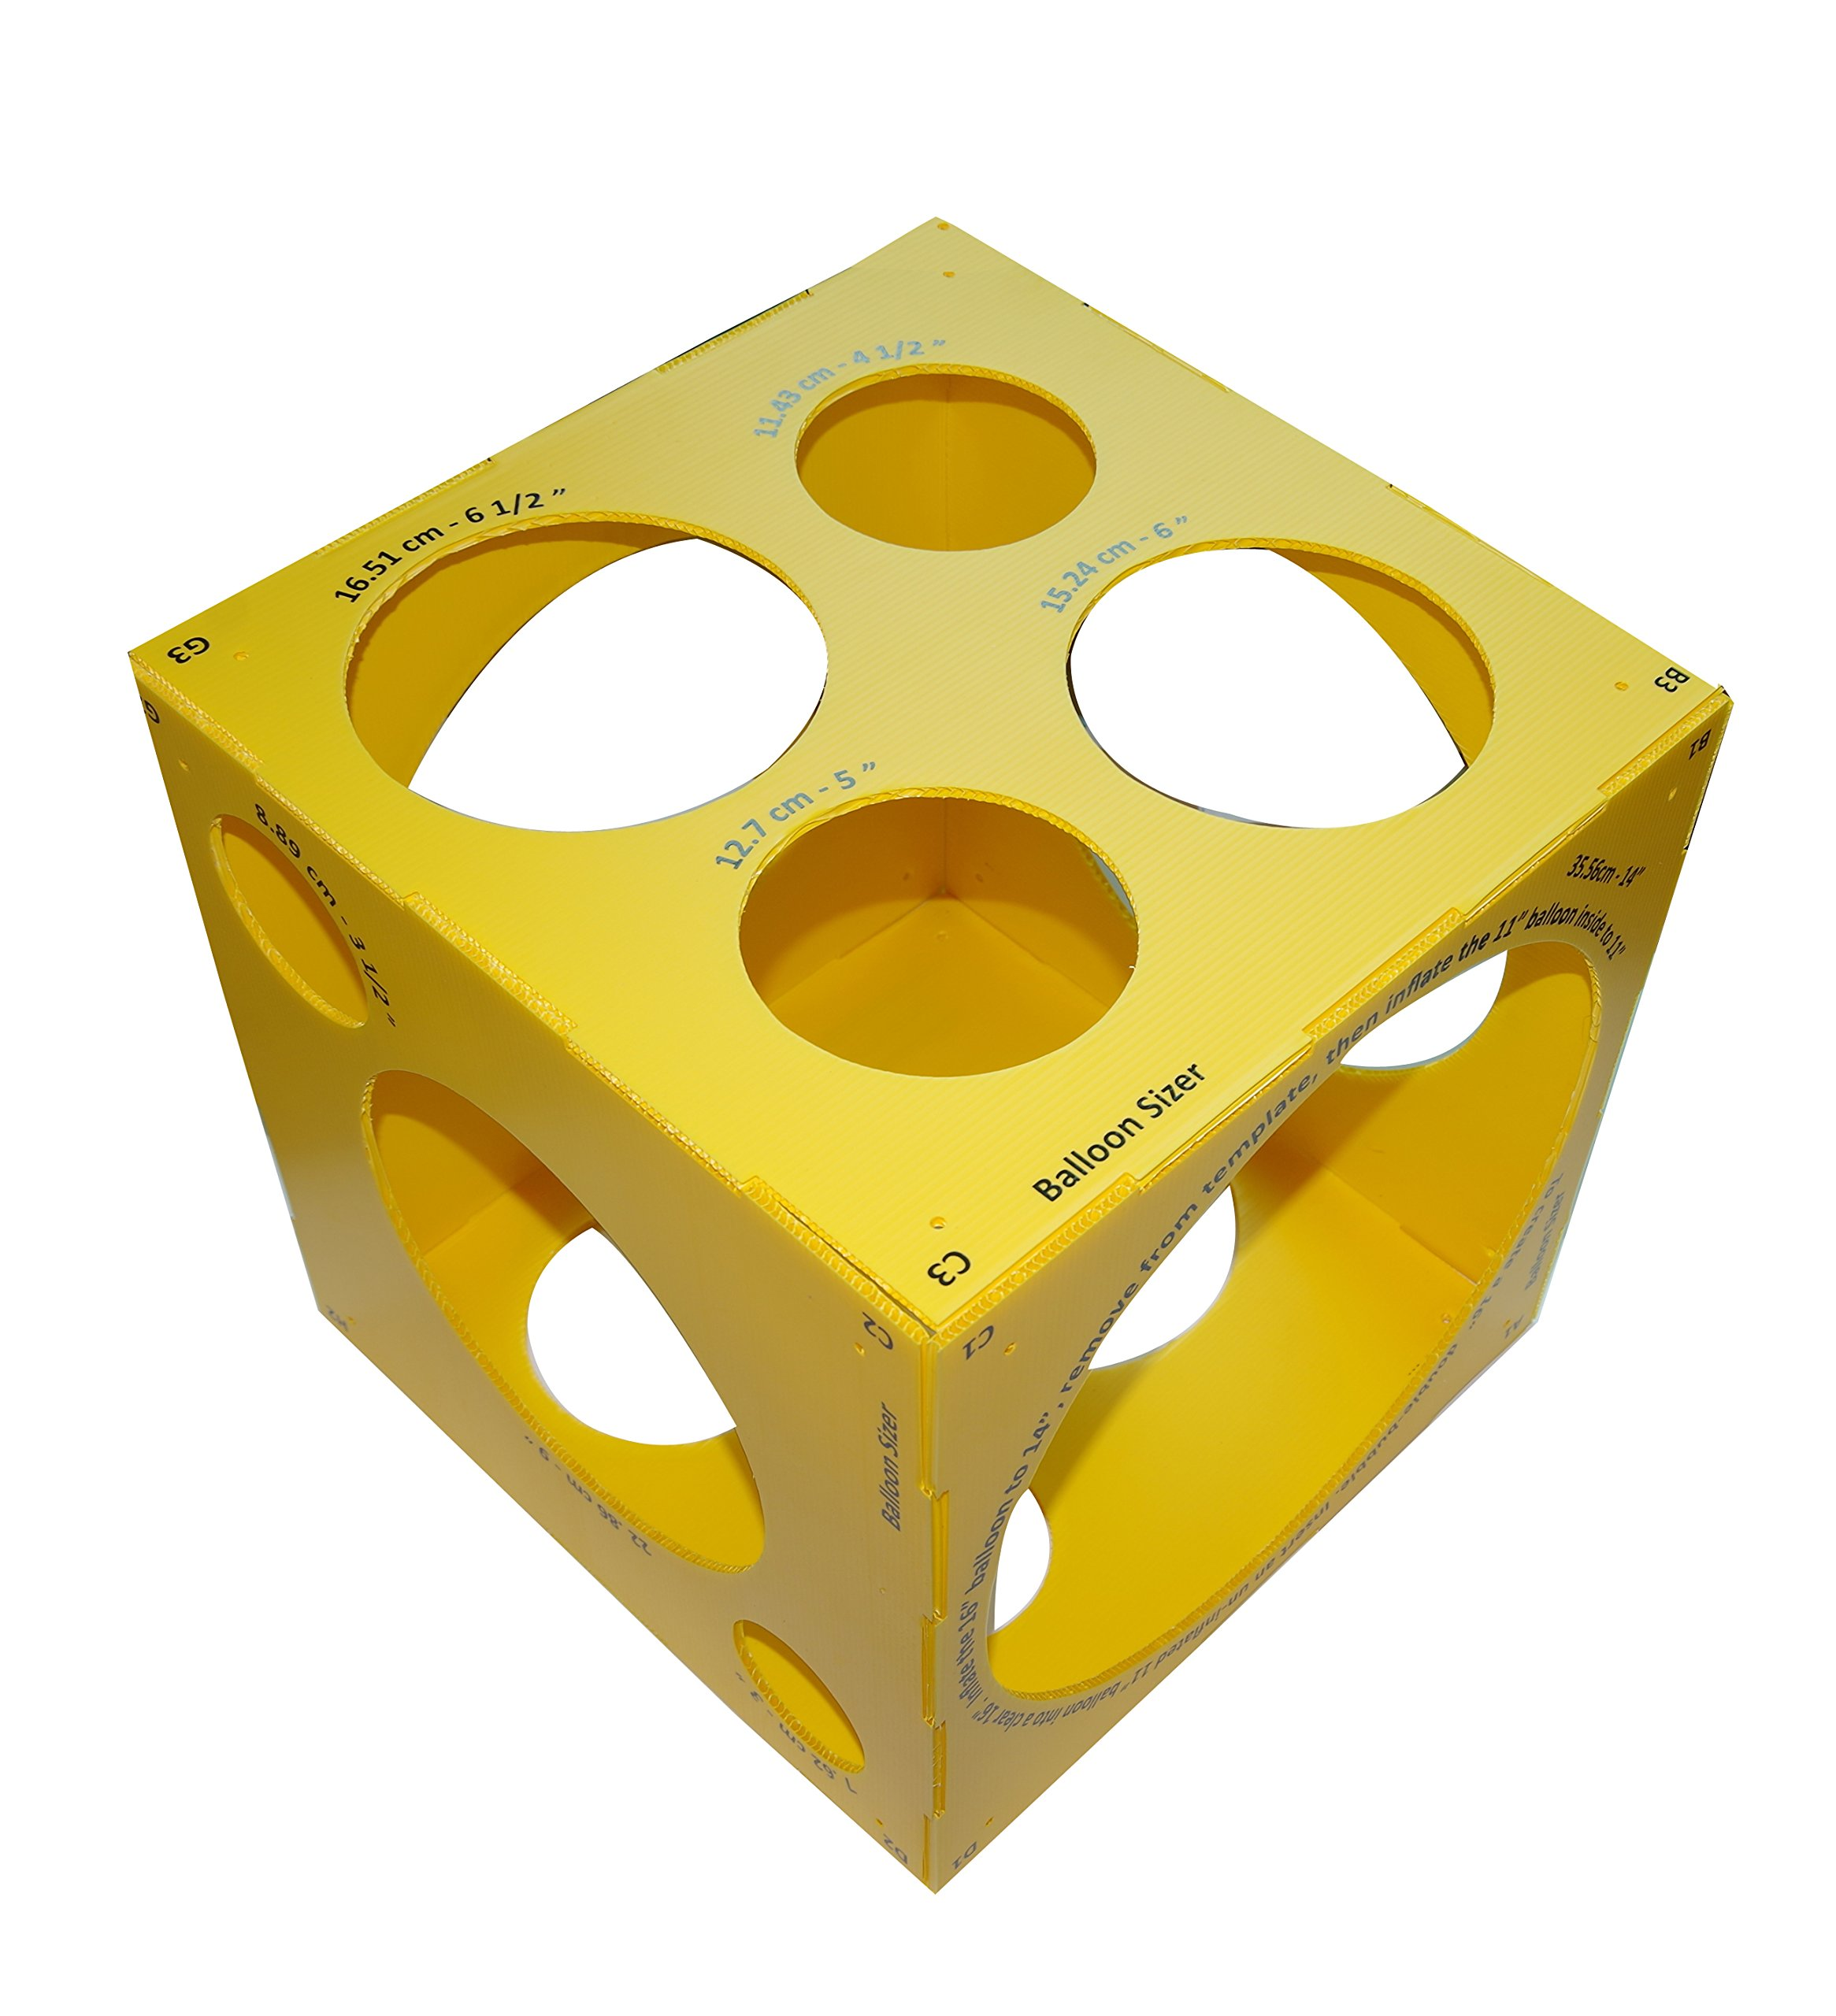 13 Holes Collapsible Plastic Cube Balloon Sizer Box From 3'' - 14'' by Jioong